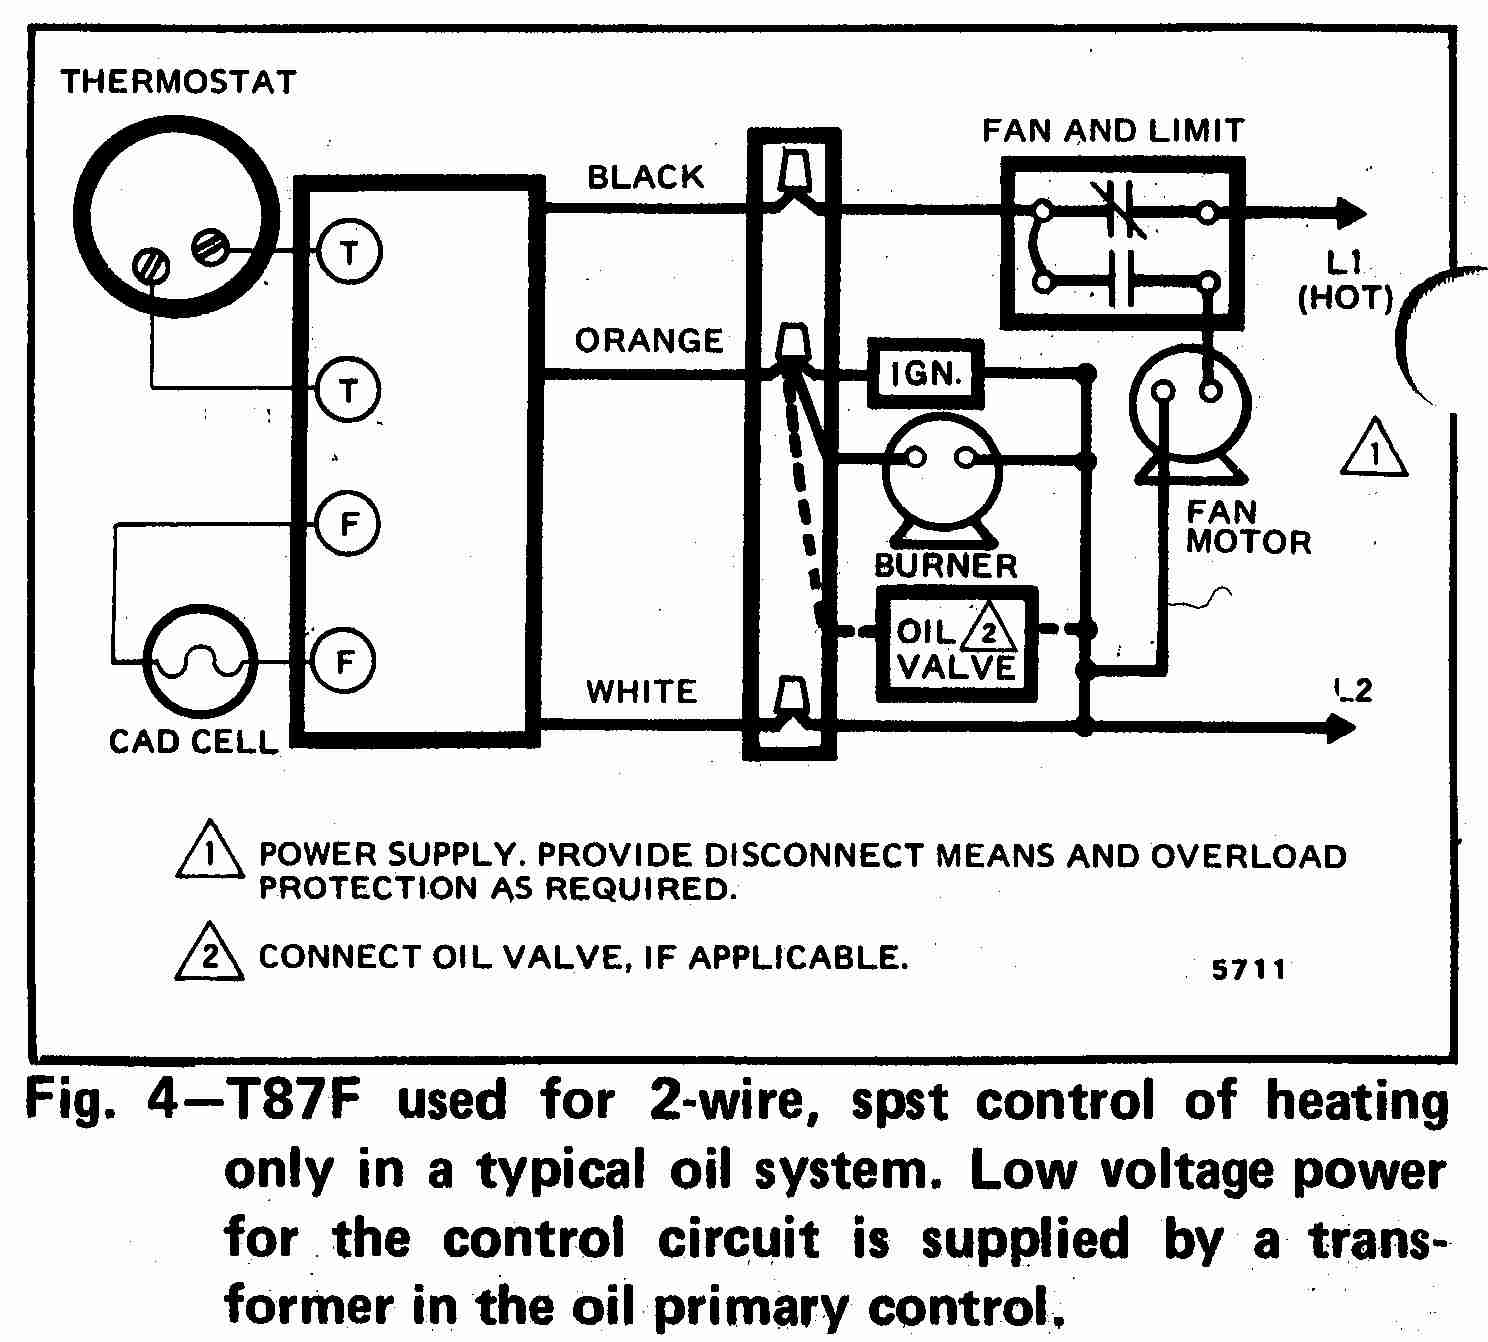 TT_T87F_0002_2W_DJF room thermostat wiring diagrams for hvac systems coleman air conditioner wiring diagram at n-0.co